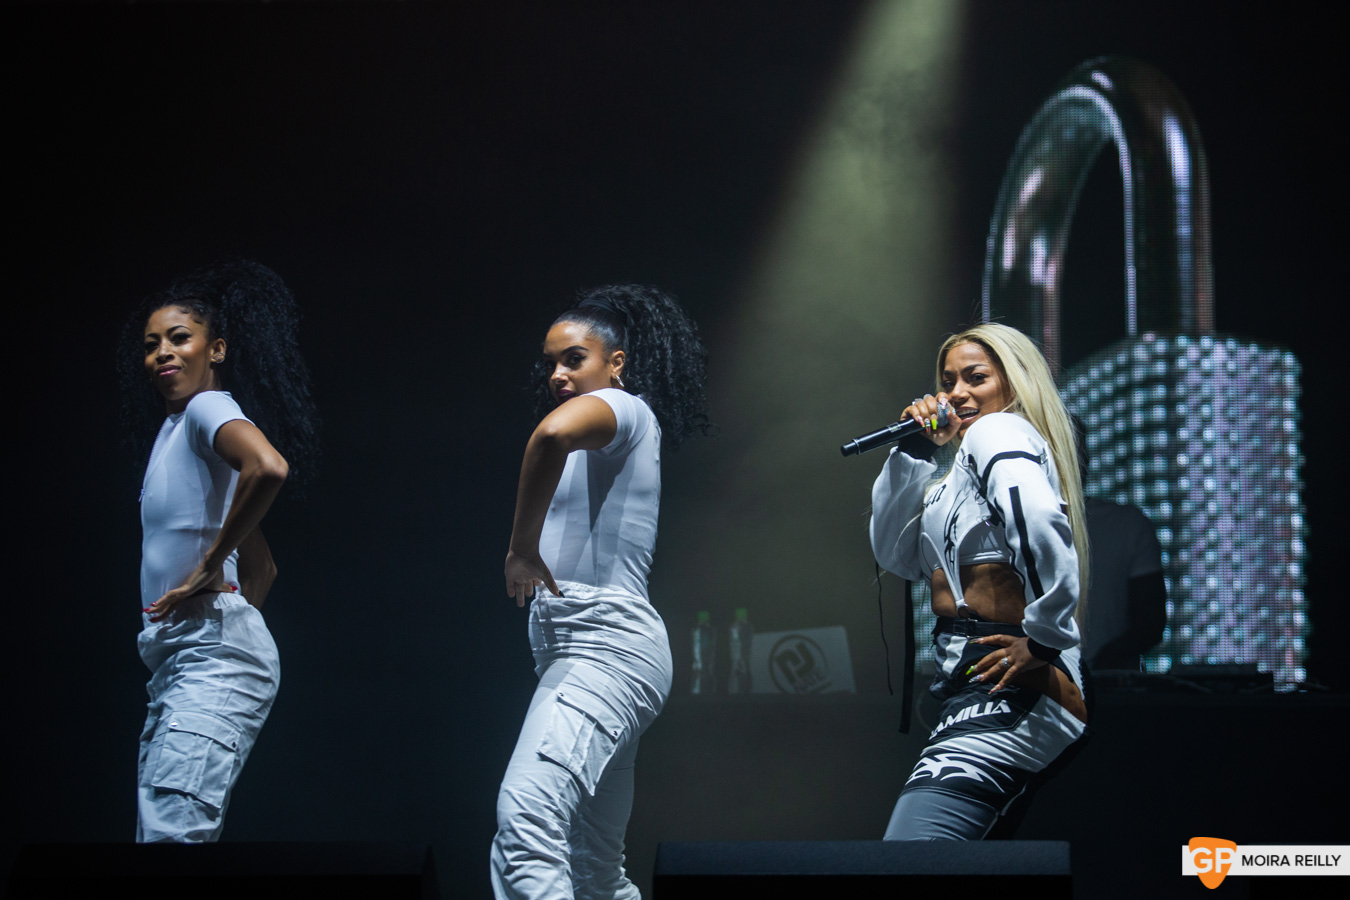 StefflonDon_Leeds_25Aug19_MoiraReilly-7